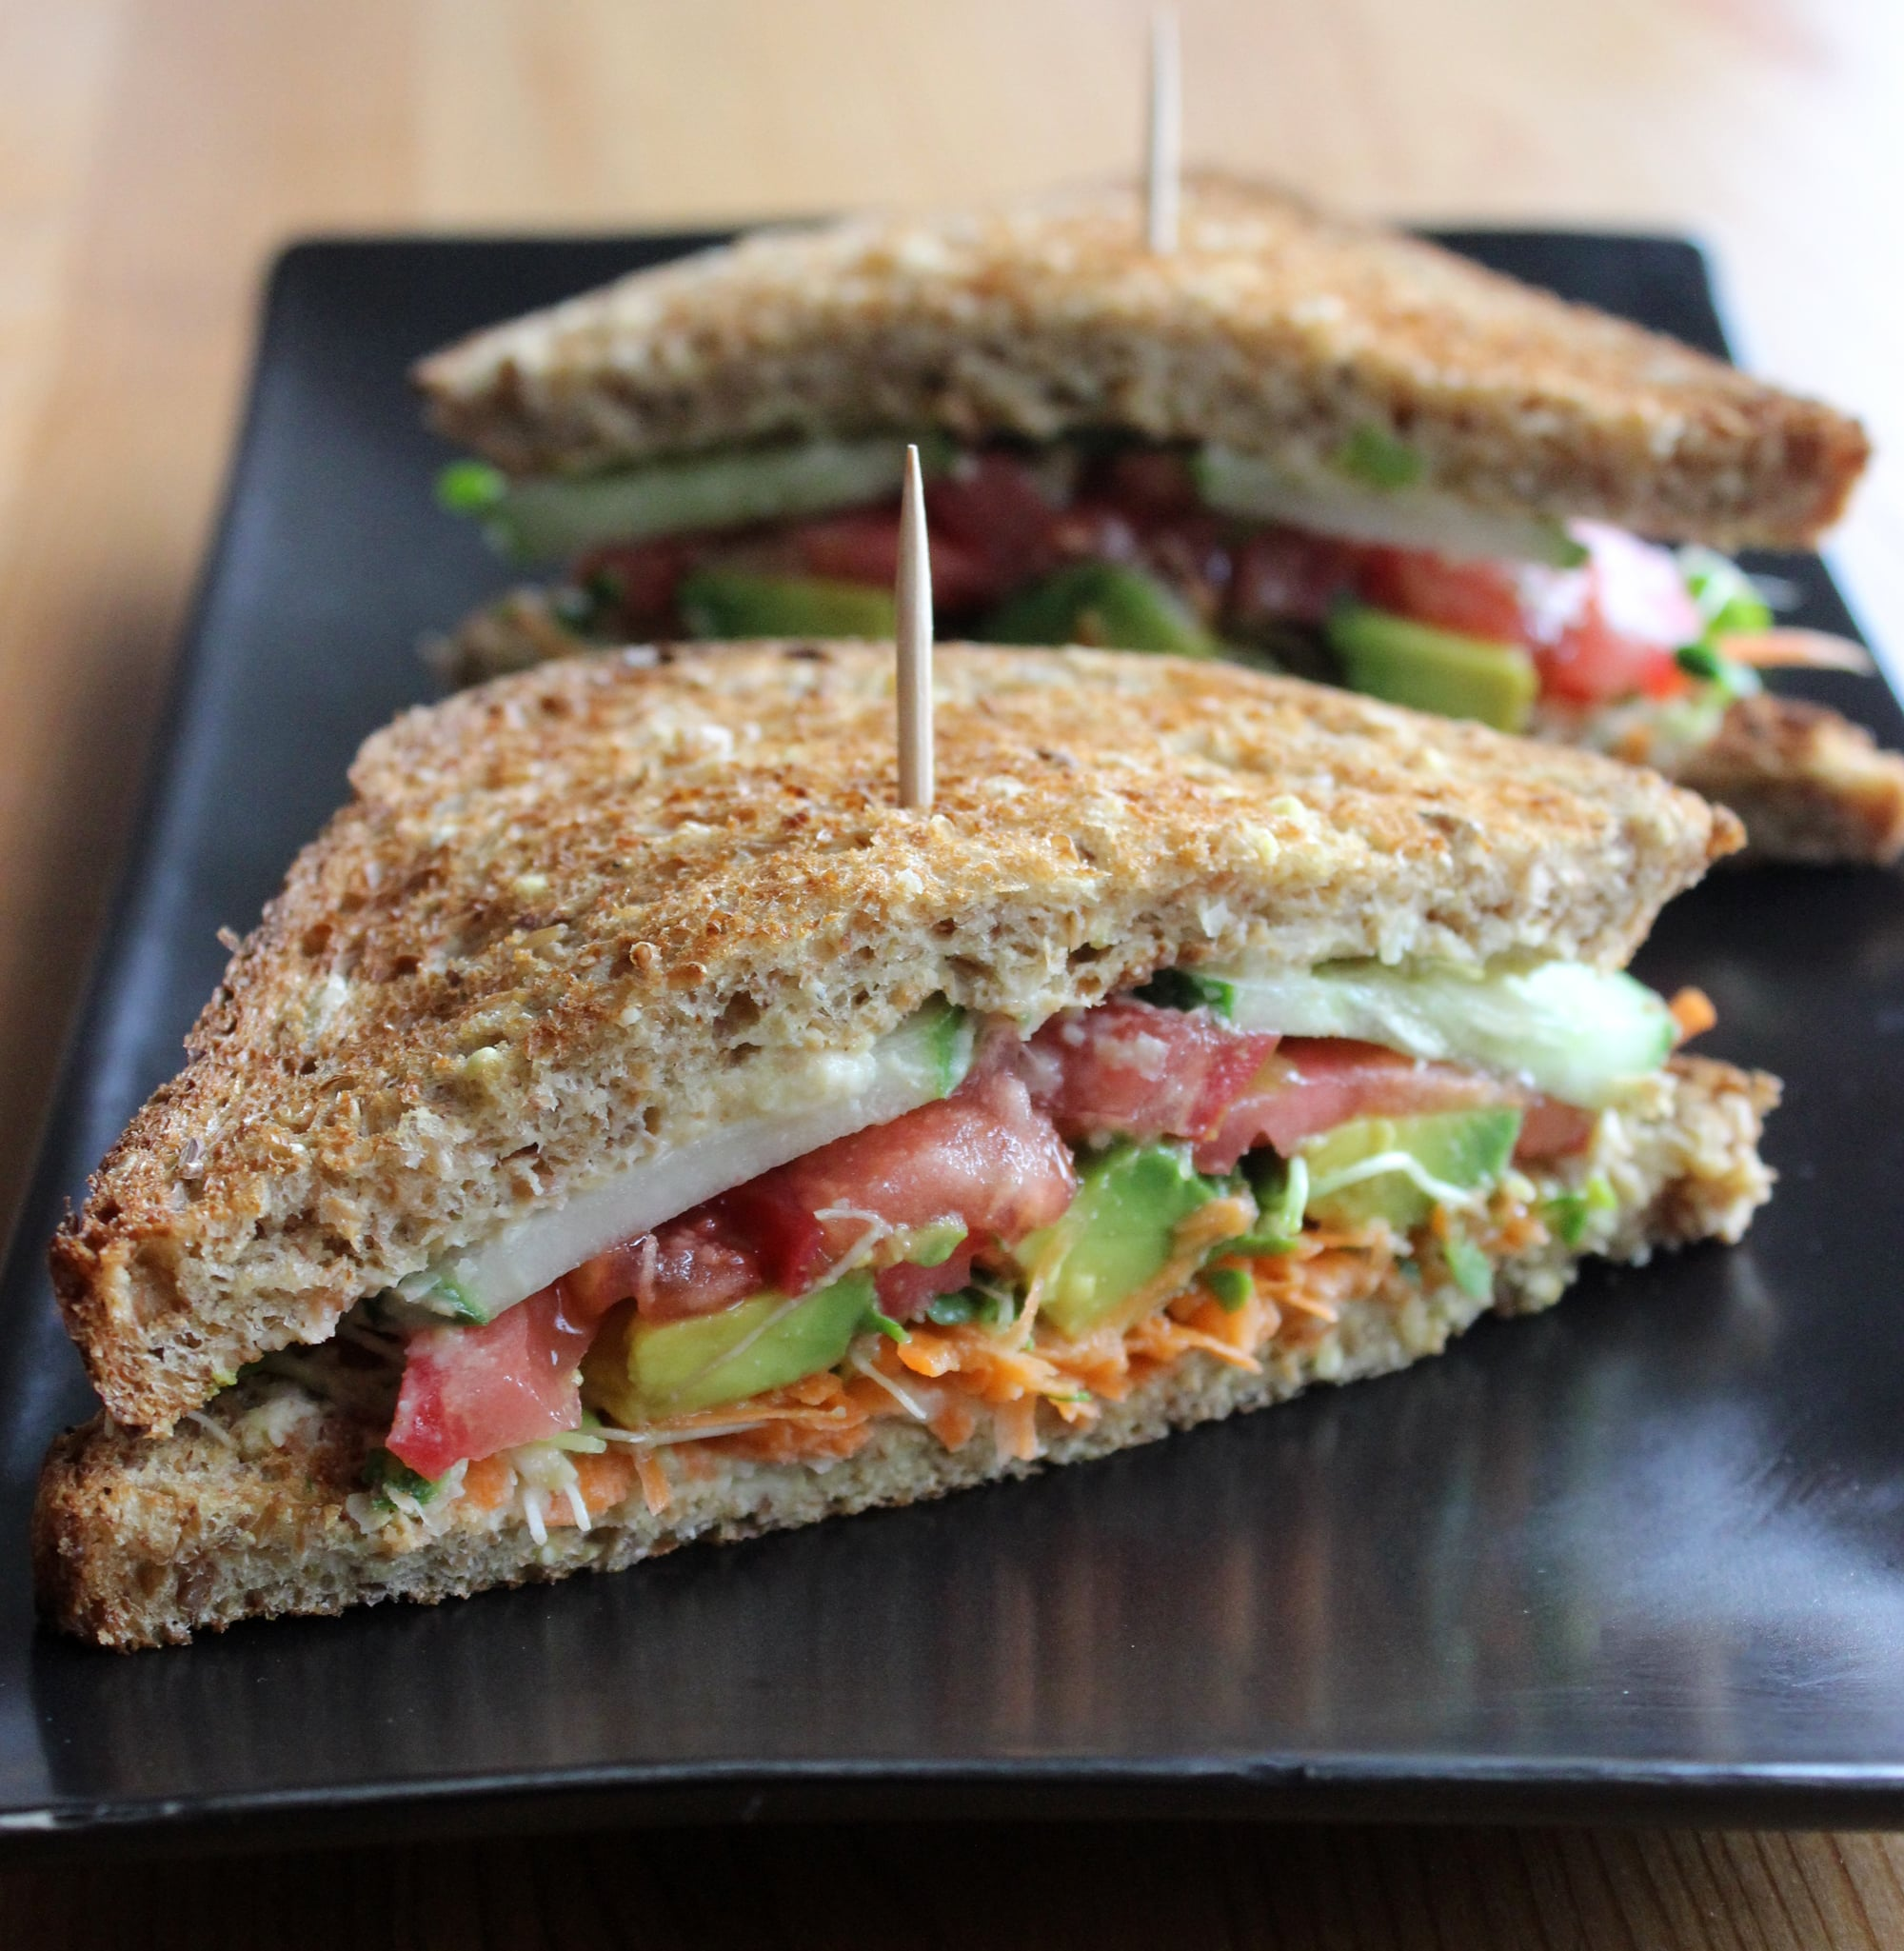 Healthy Sandwich Recipes recommend